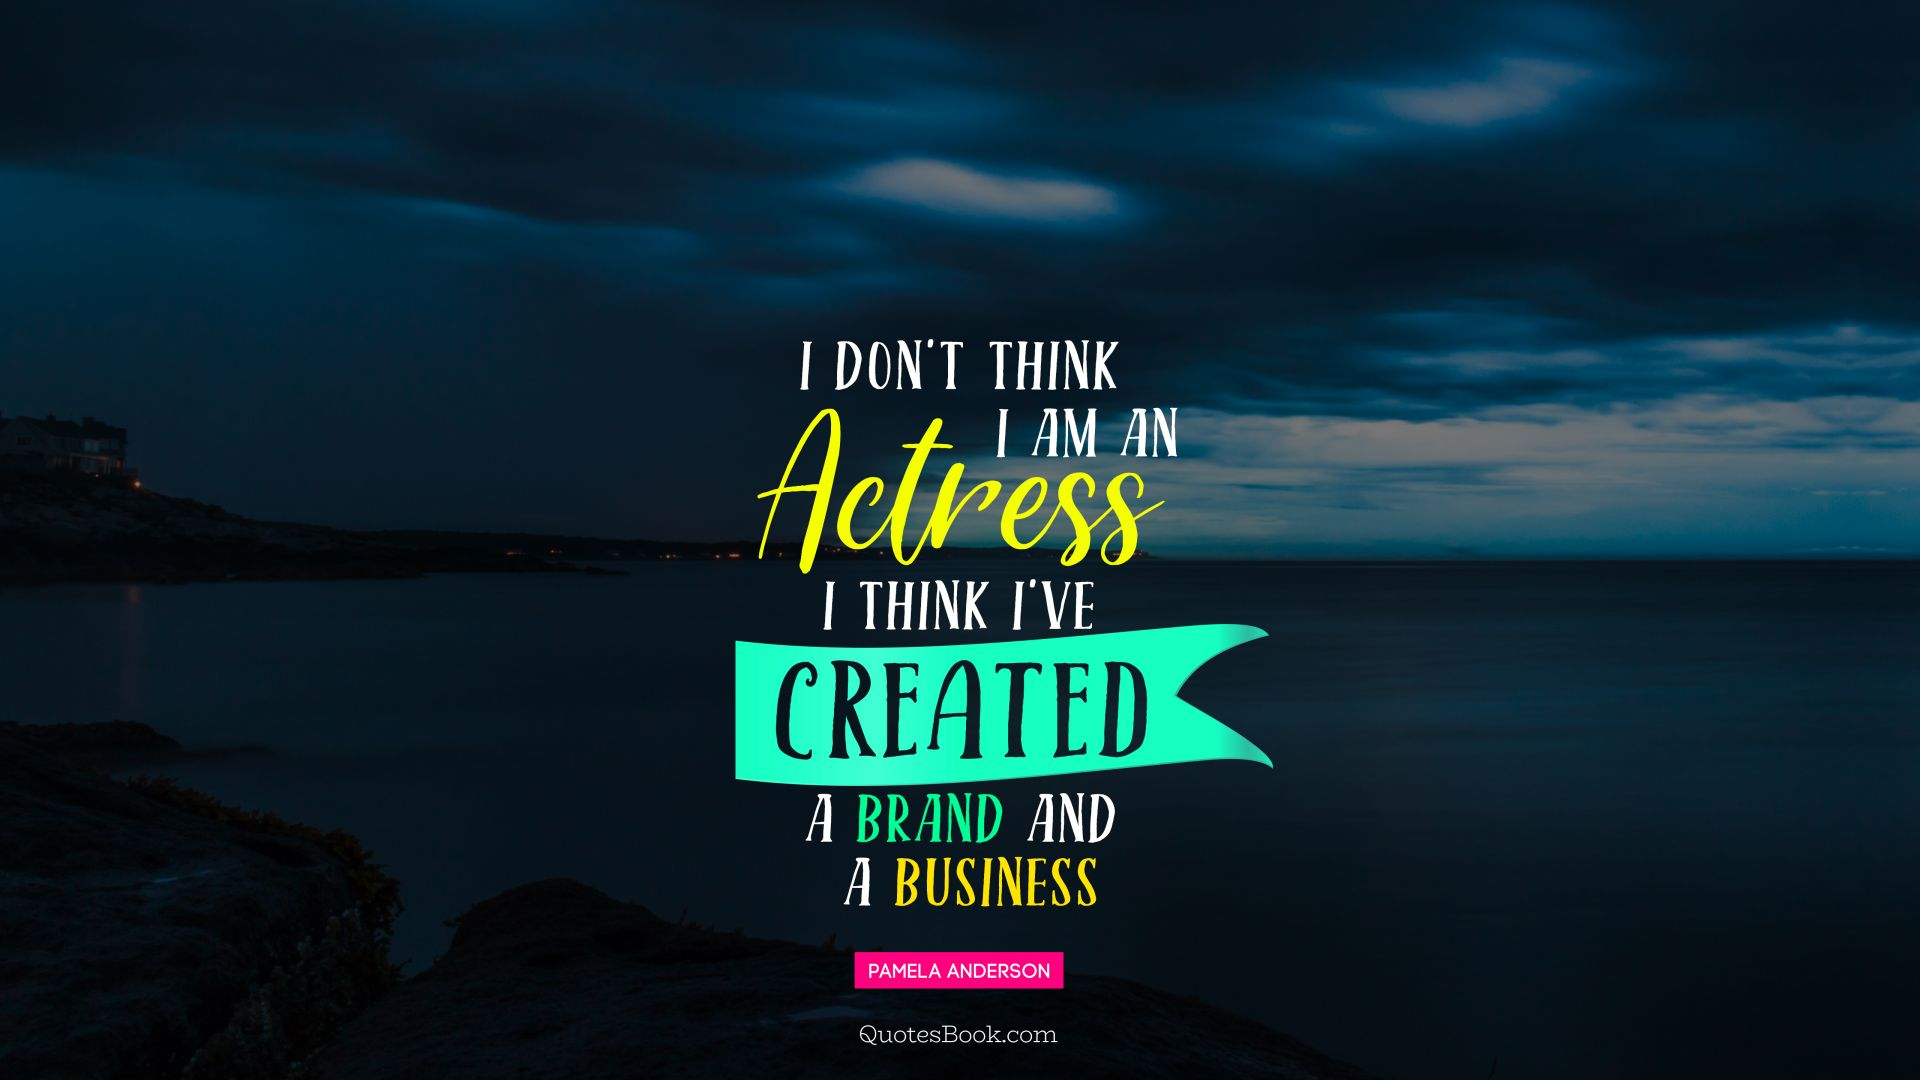 I don't think I am an actress I think I've created a brand and a business. - Quote by Pamela Anderson